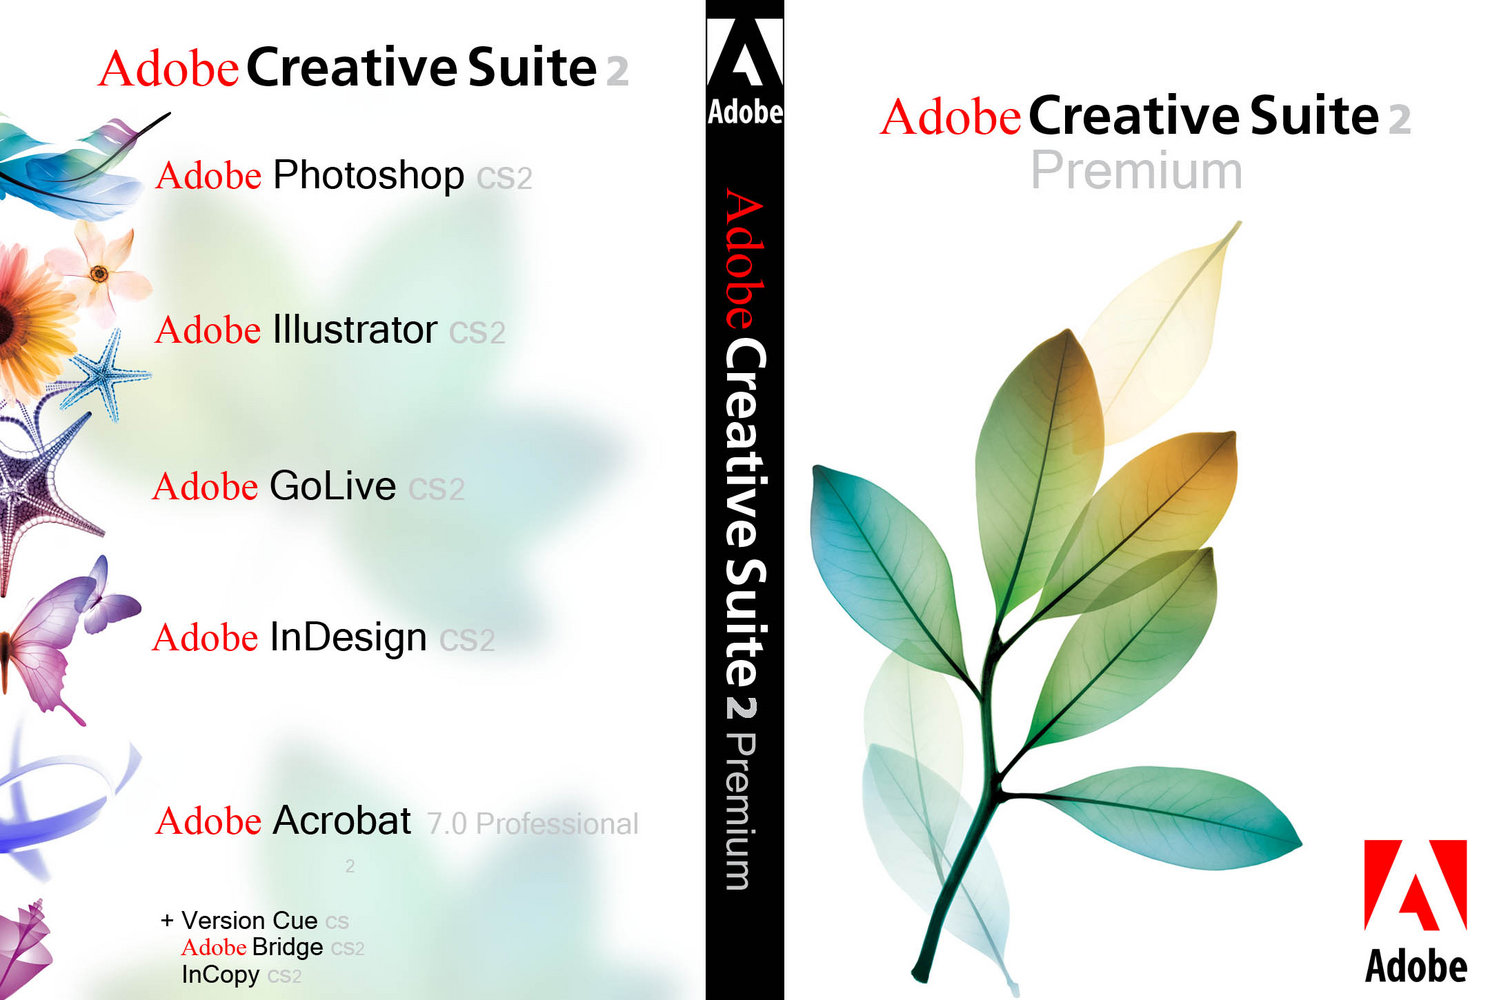 Adobe creative suite 2 premium education